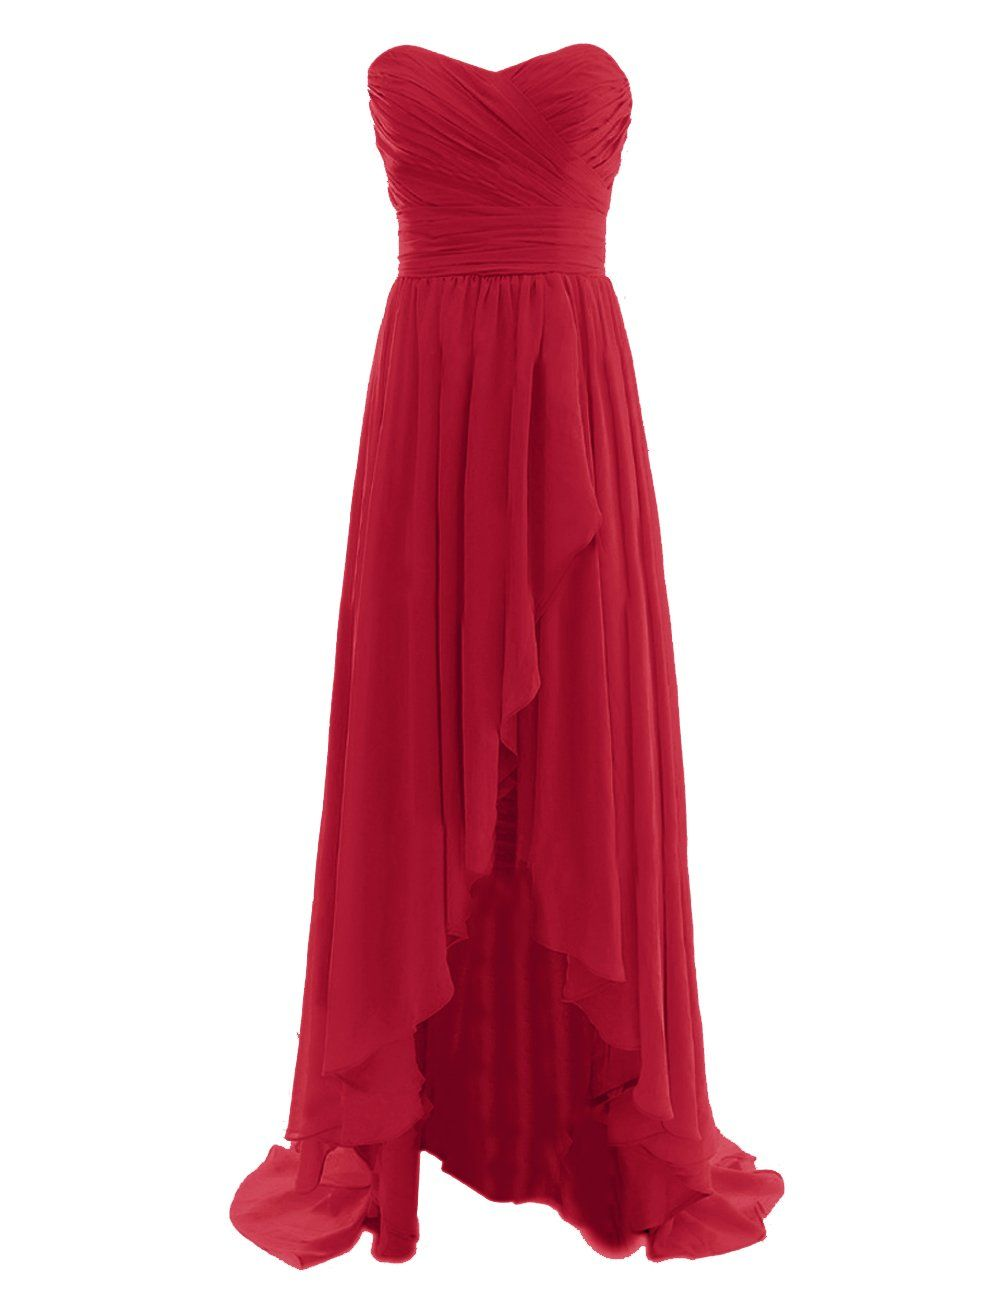 Diyouth long high low bridesmaid dresses sweetheart formal evening diyouth long high low bridesmaid dresses sweetheart formal evening gowns dark red size 22w ombrellifo Gallery